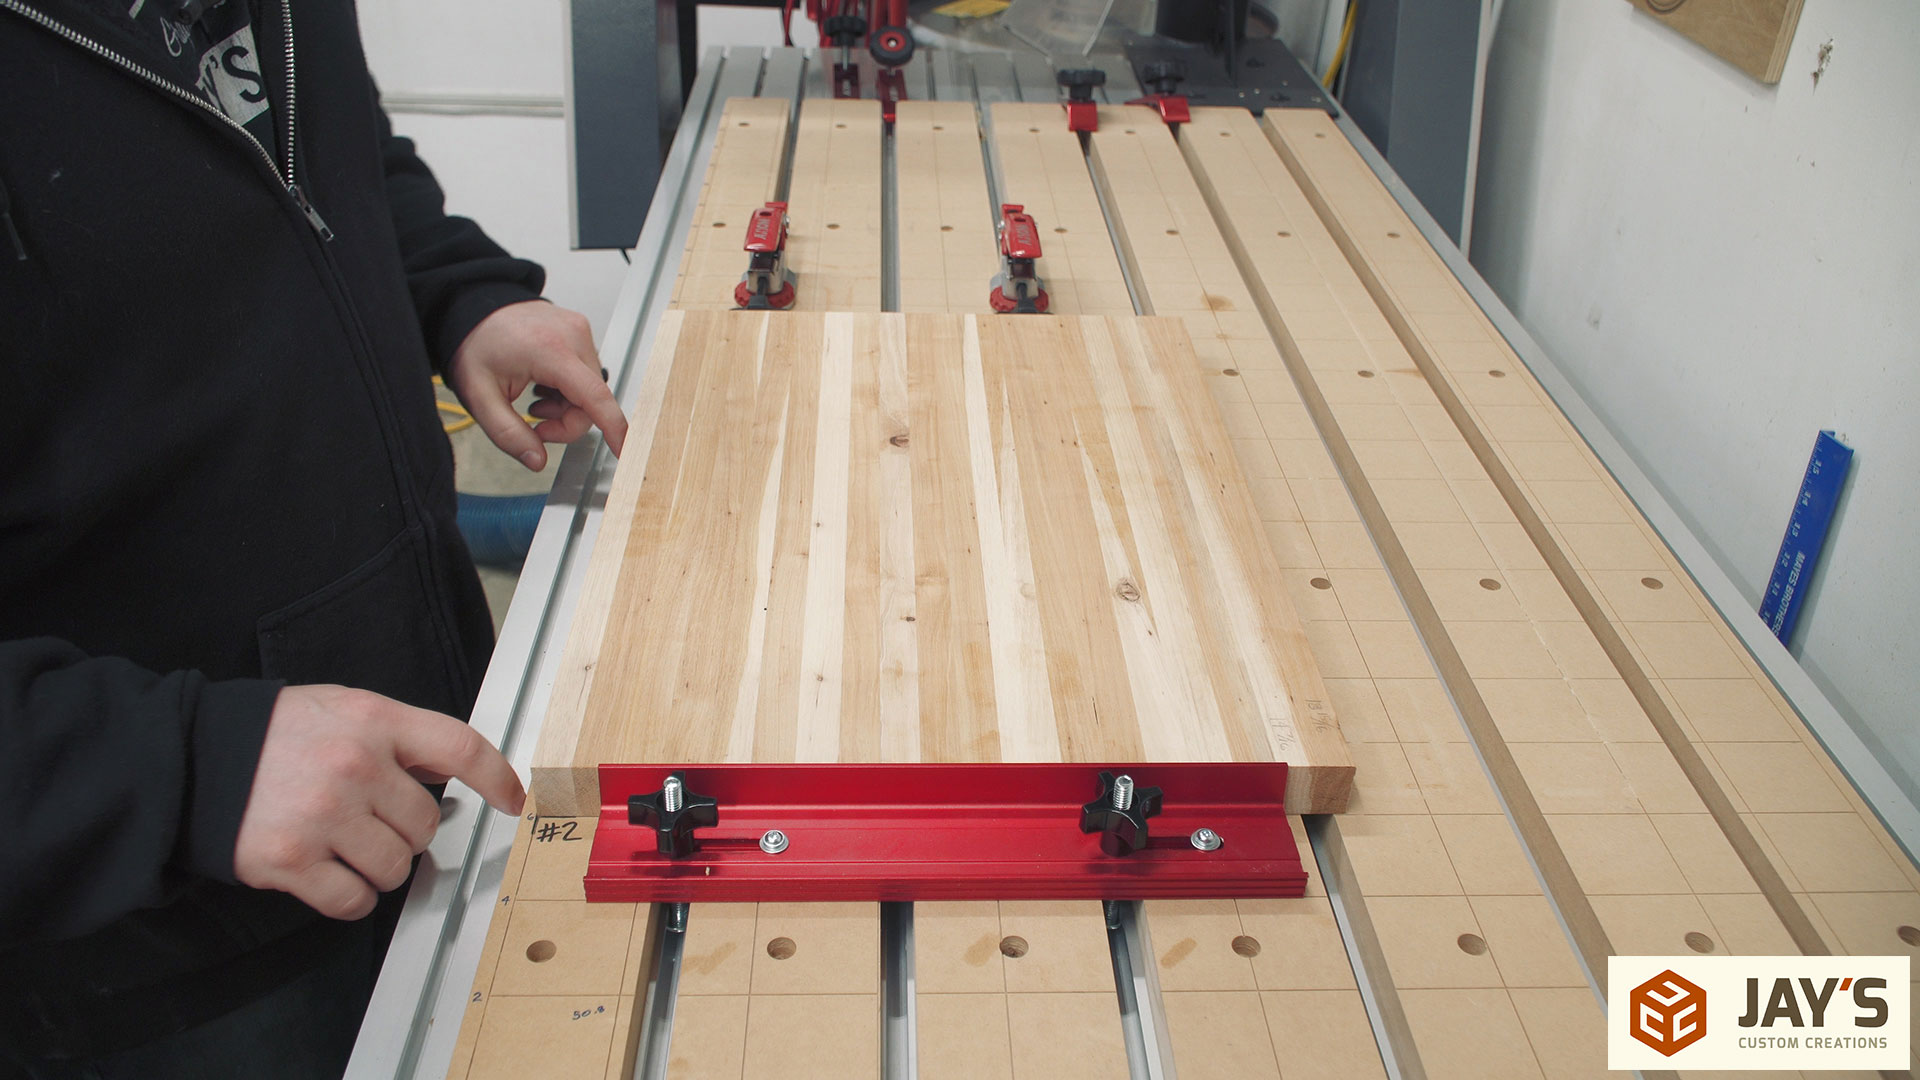 What I Learned – Personalizing Cutting Boards with VCarve